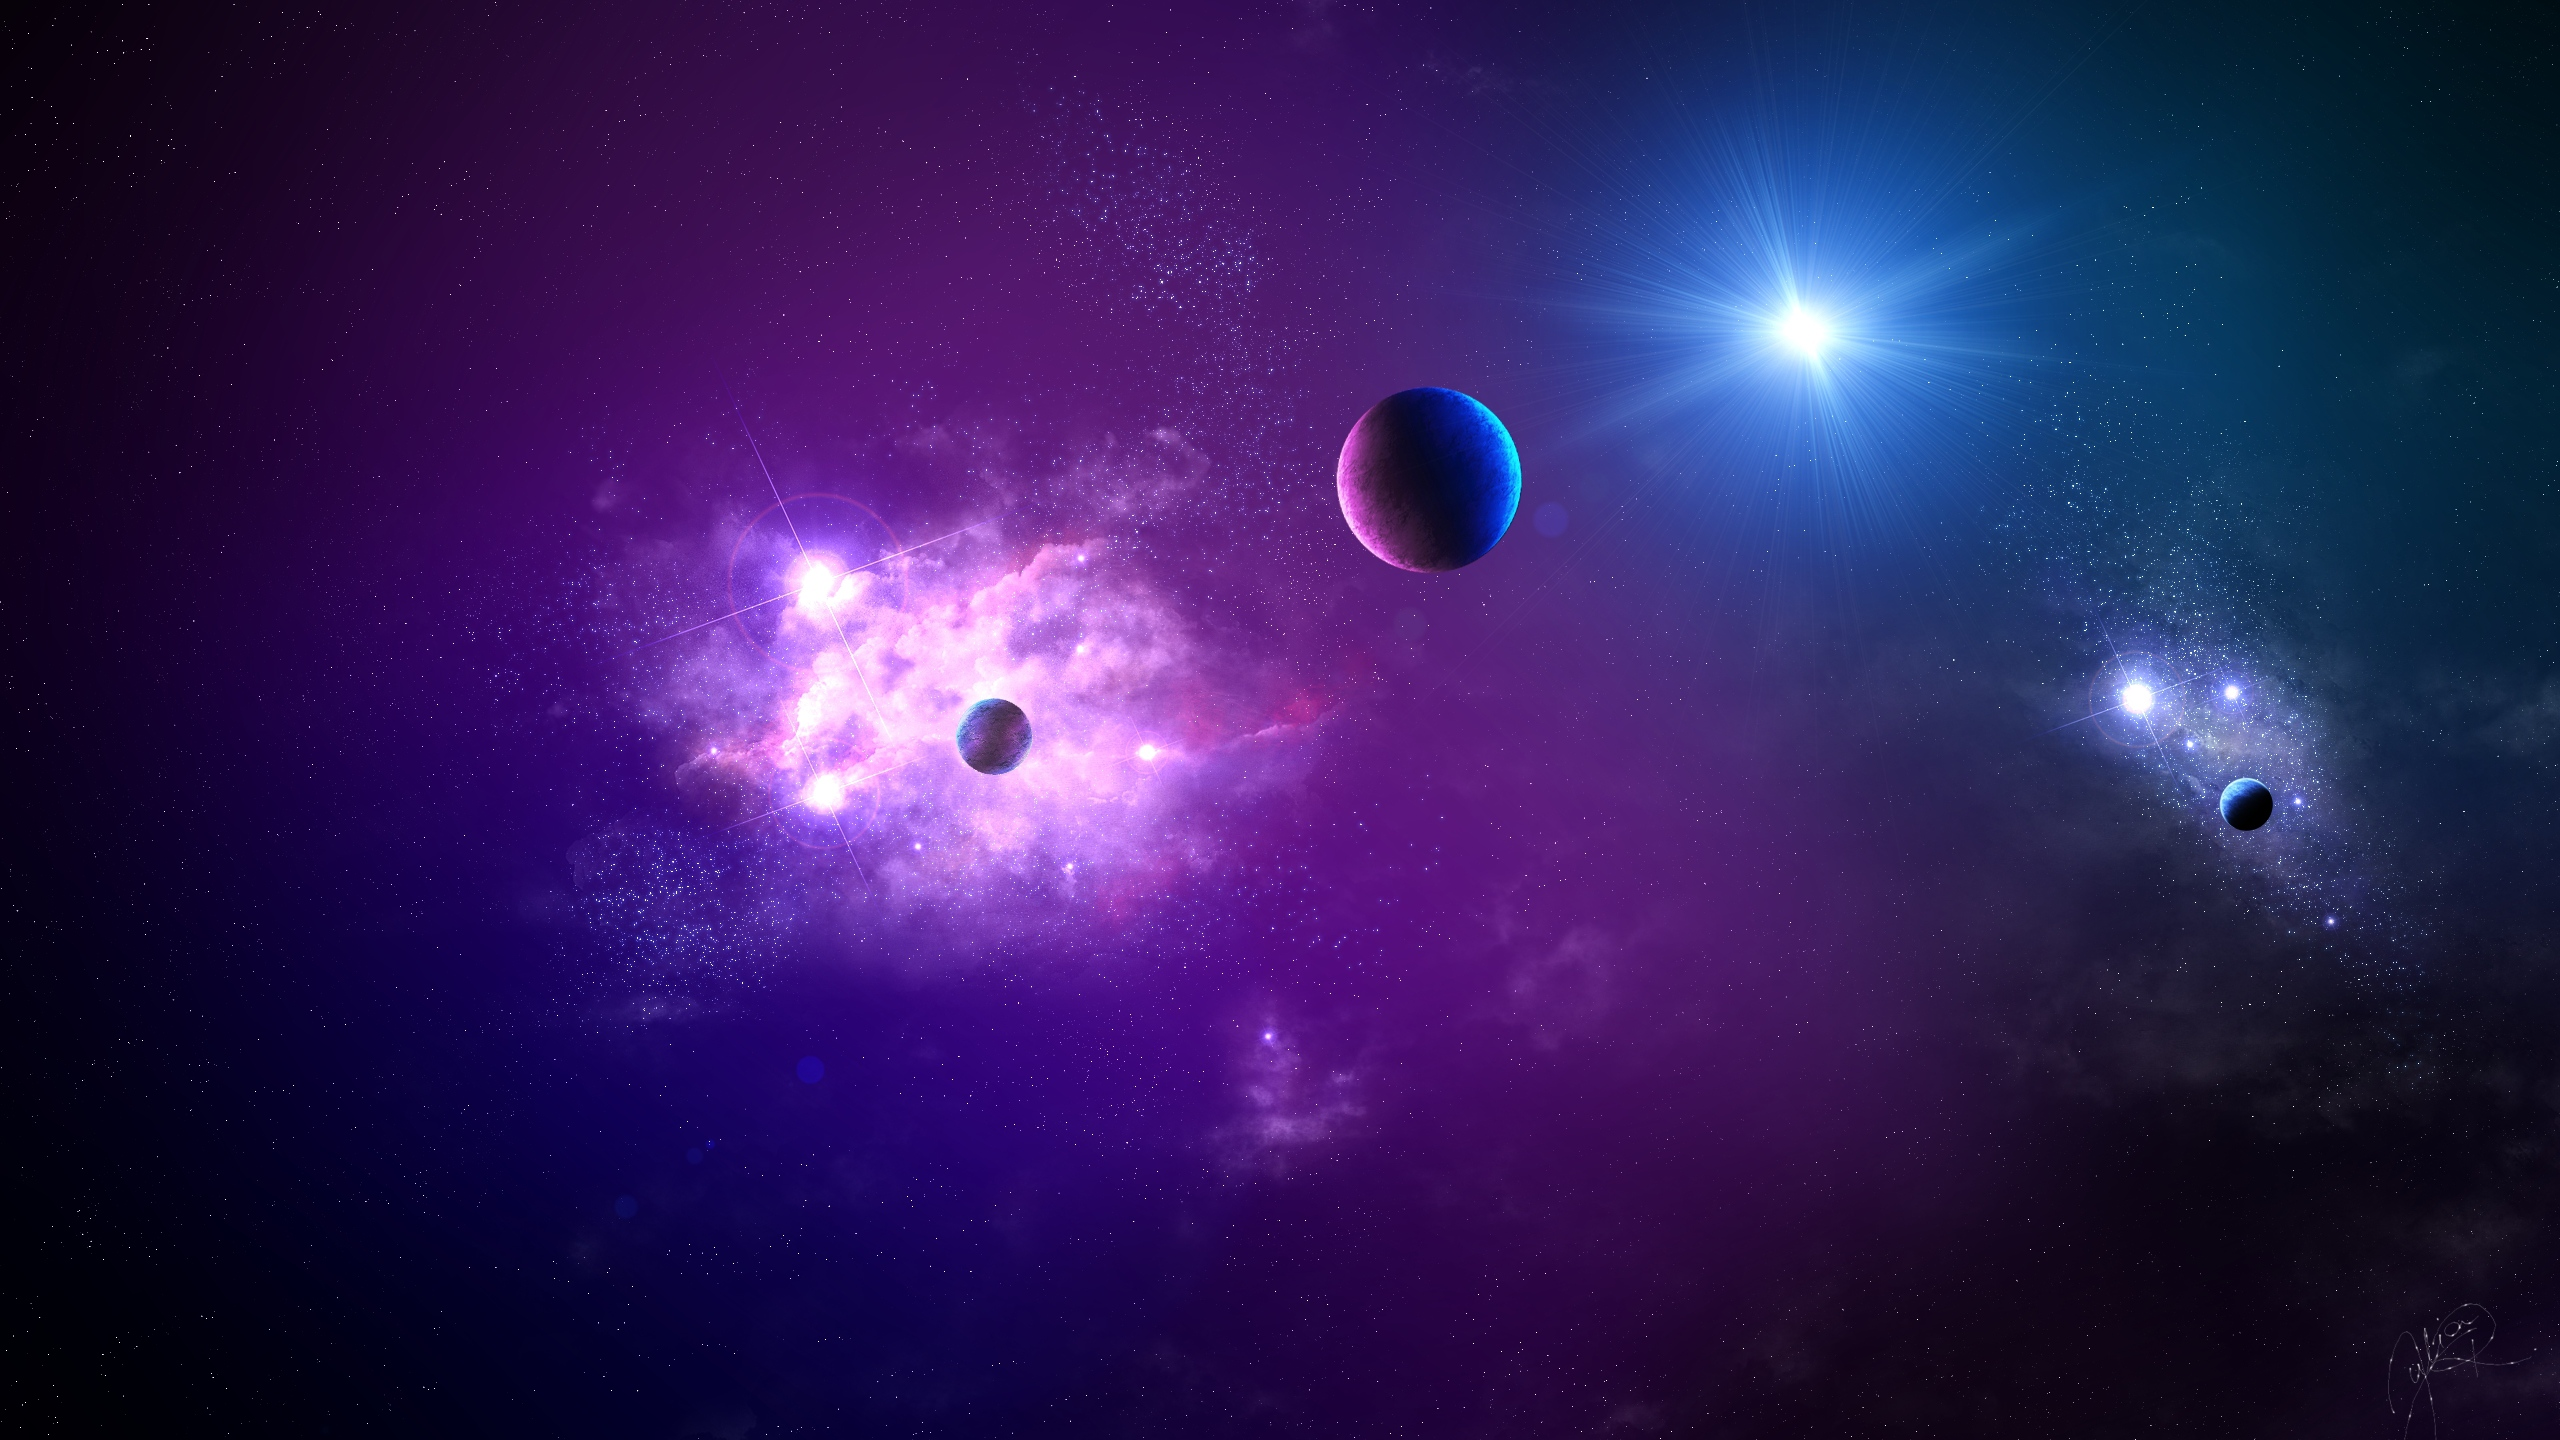 2560 x 1440 Galaxy Wallpaper - WallpaperSafari